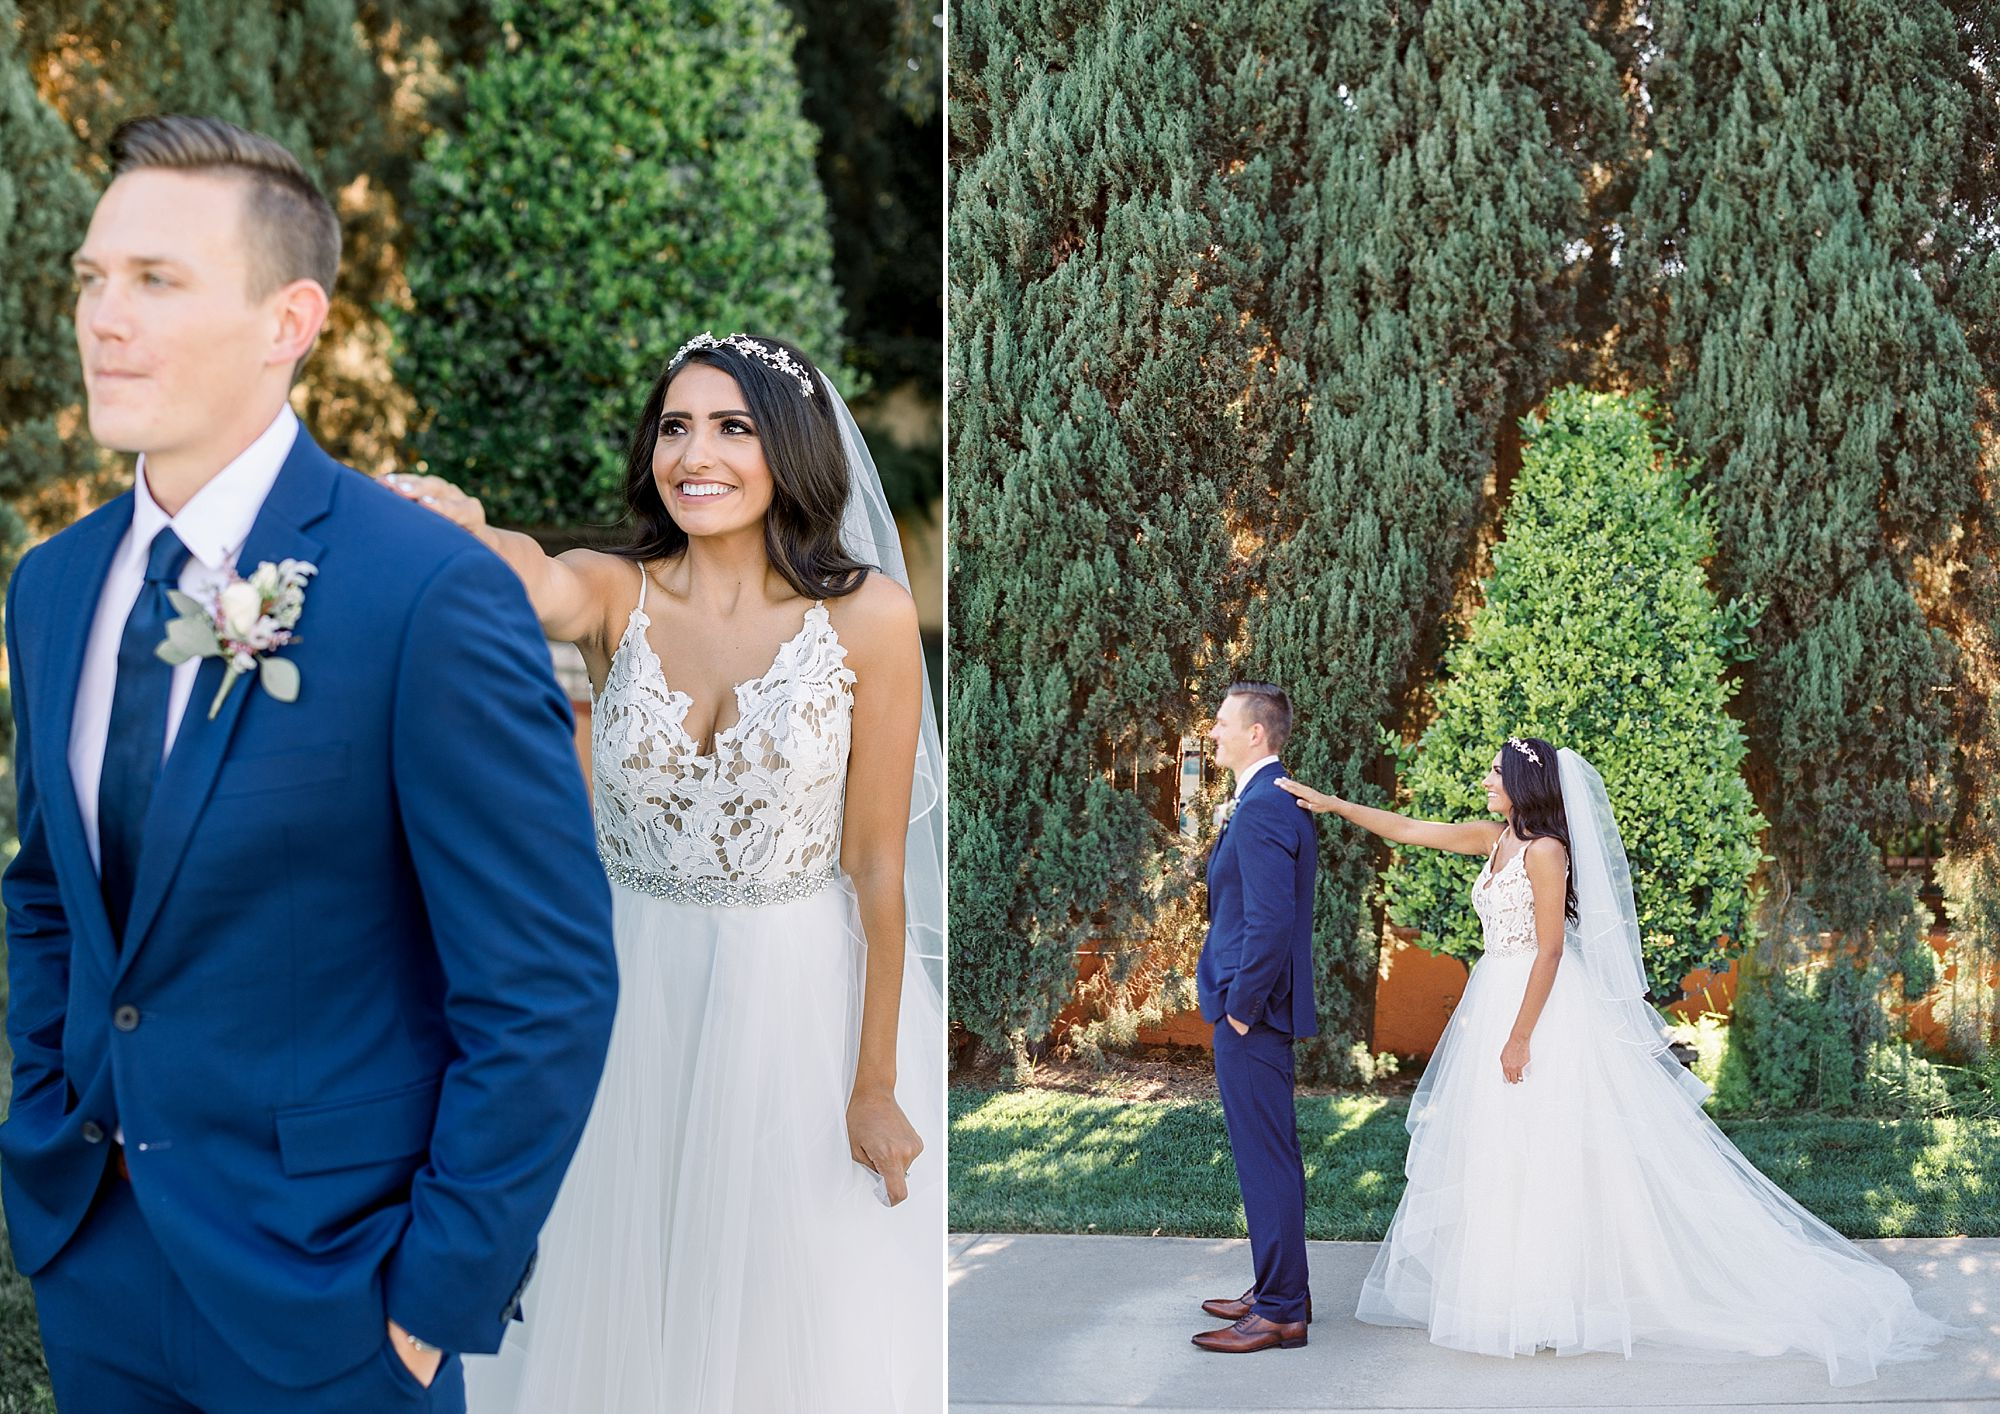 The River Mill Wedding Stockton - Ashley Baumgartner - Stockton Wedding Photographer - Sacramento Wedding Photography - Hybrid and Film Photographer - Sacramento Film Photographer_0019.jpg